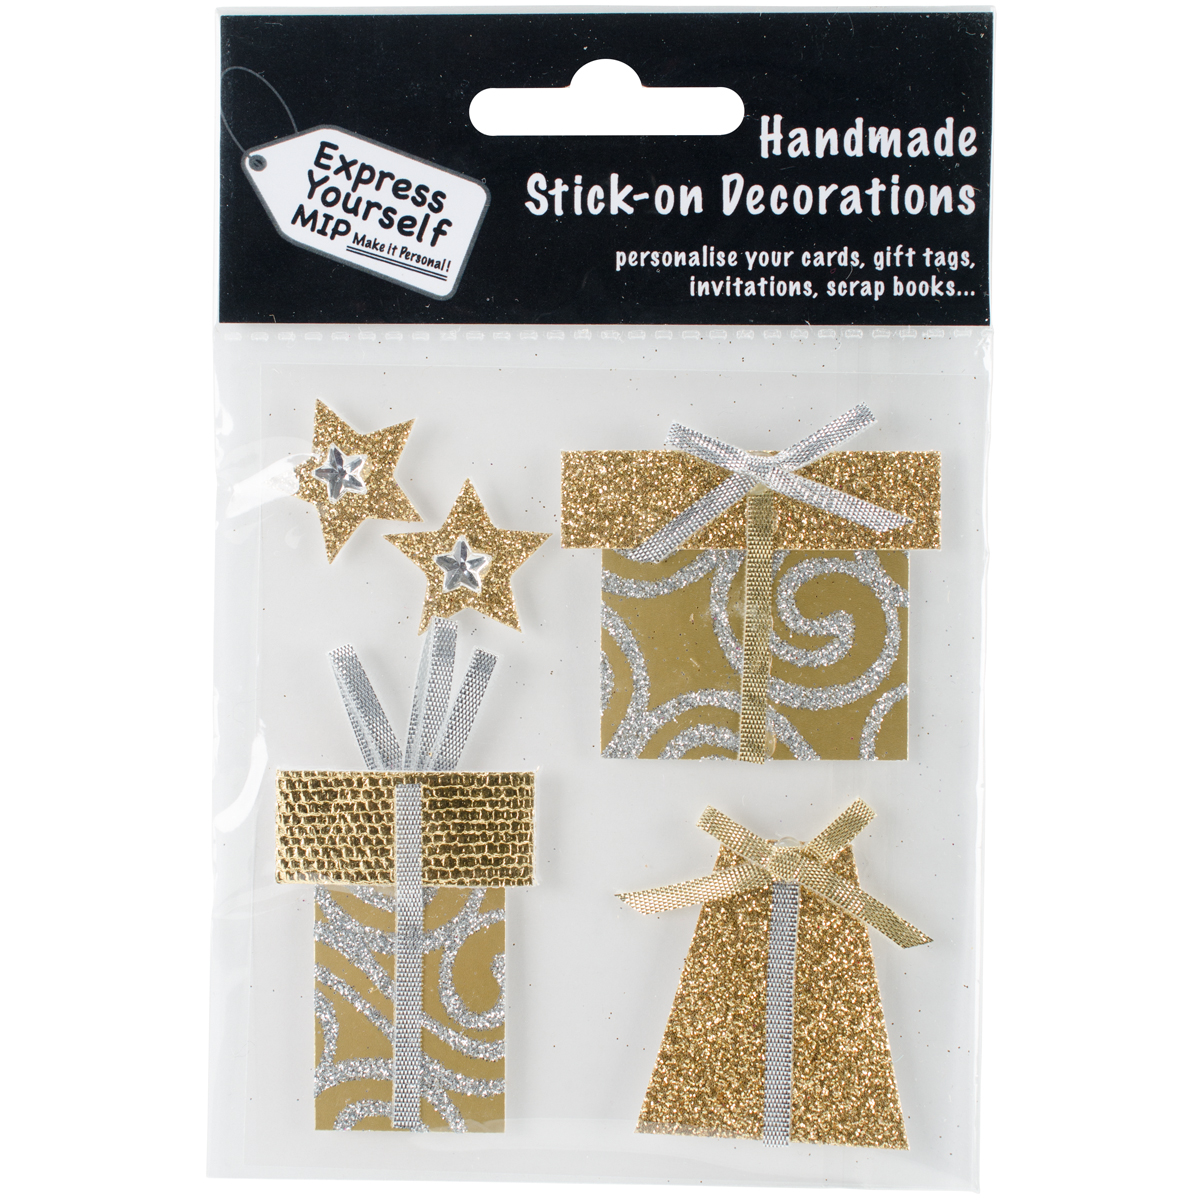 Express Yourself MIP 3D Stickers-Gold Gift Boxes & Stars